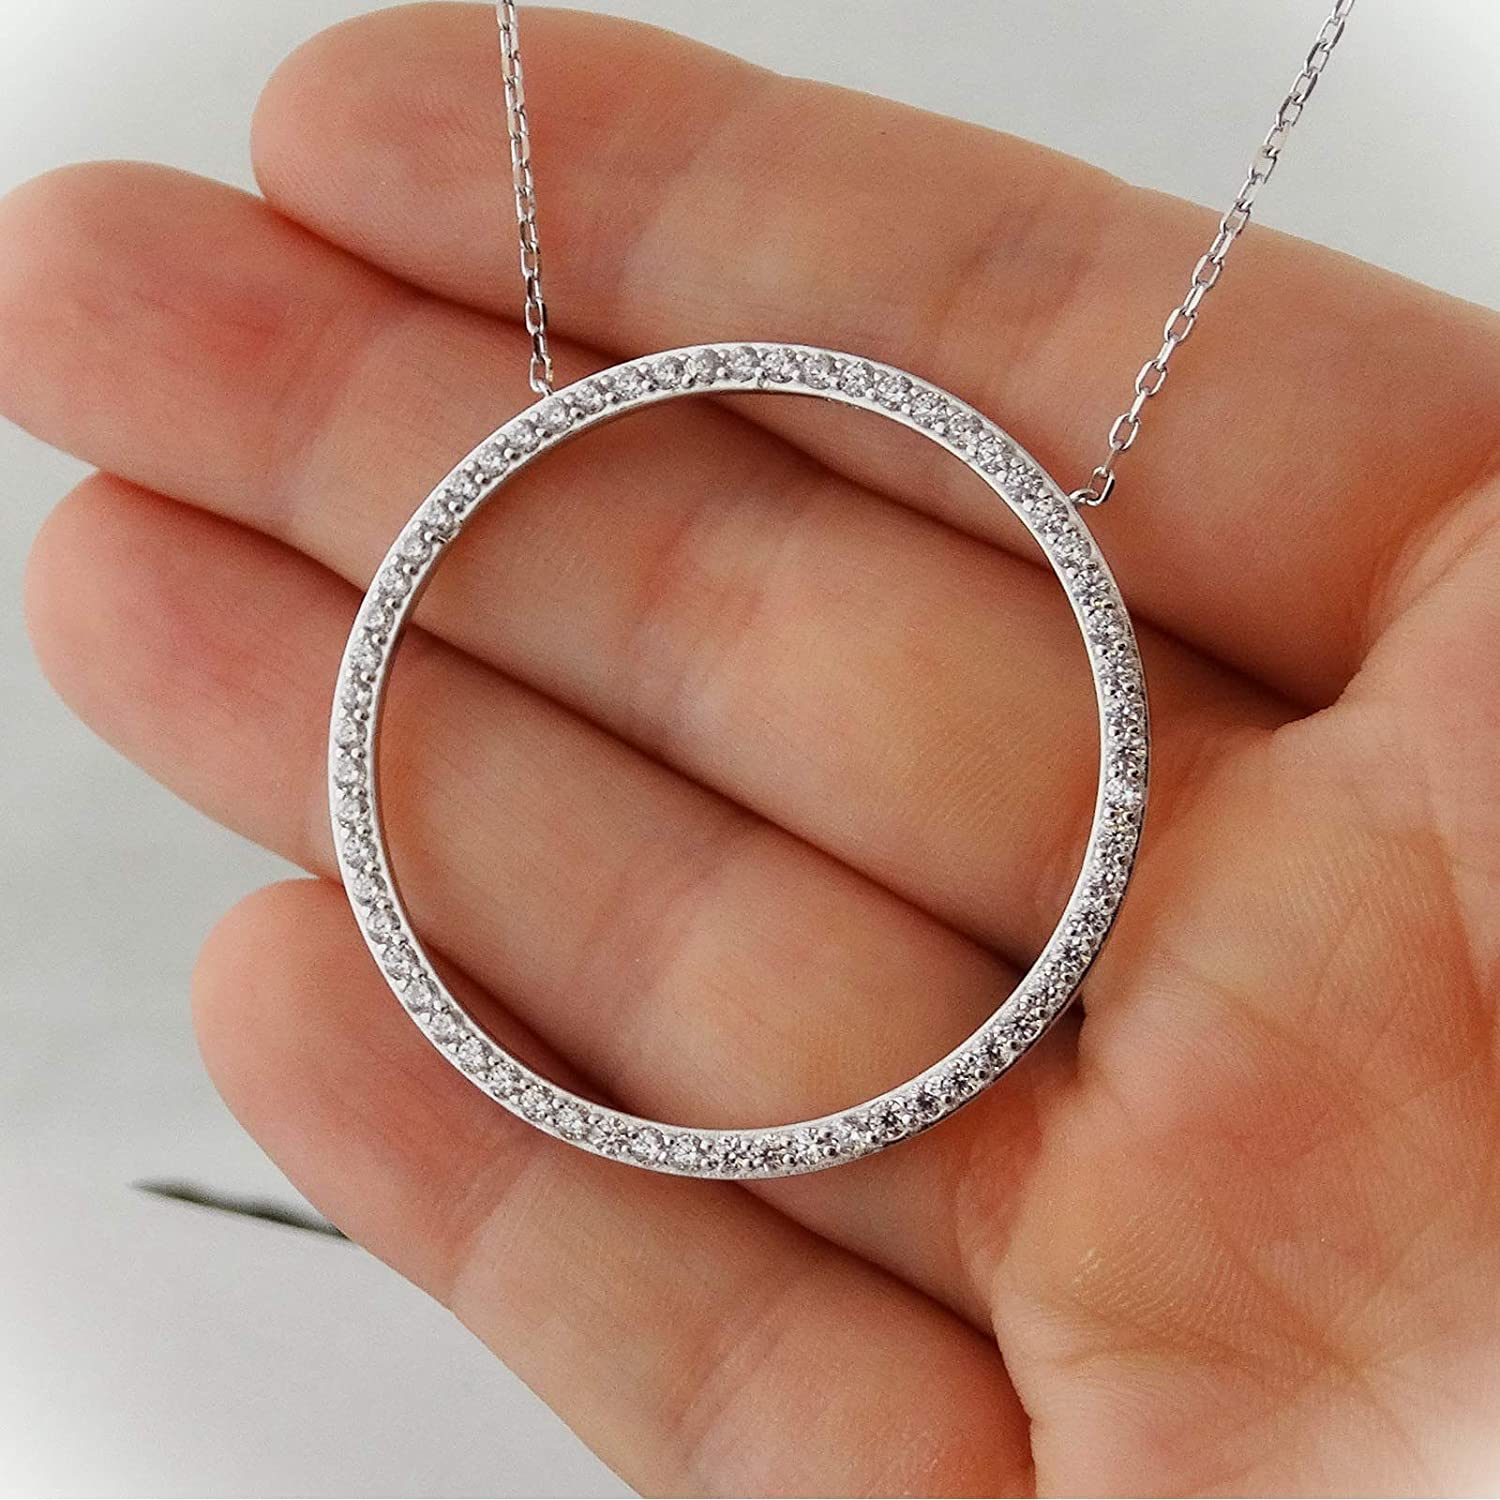 Top 10 Jewelry Gift Stainless Steel Marcasite Textured Circle Necklace